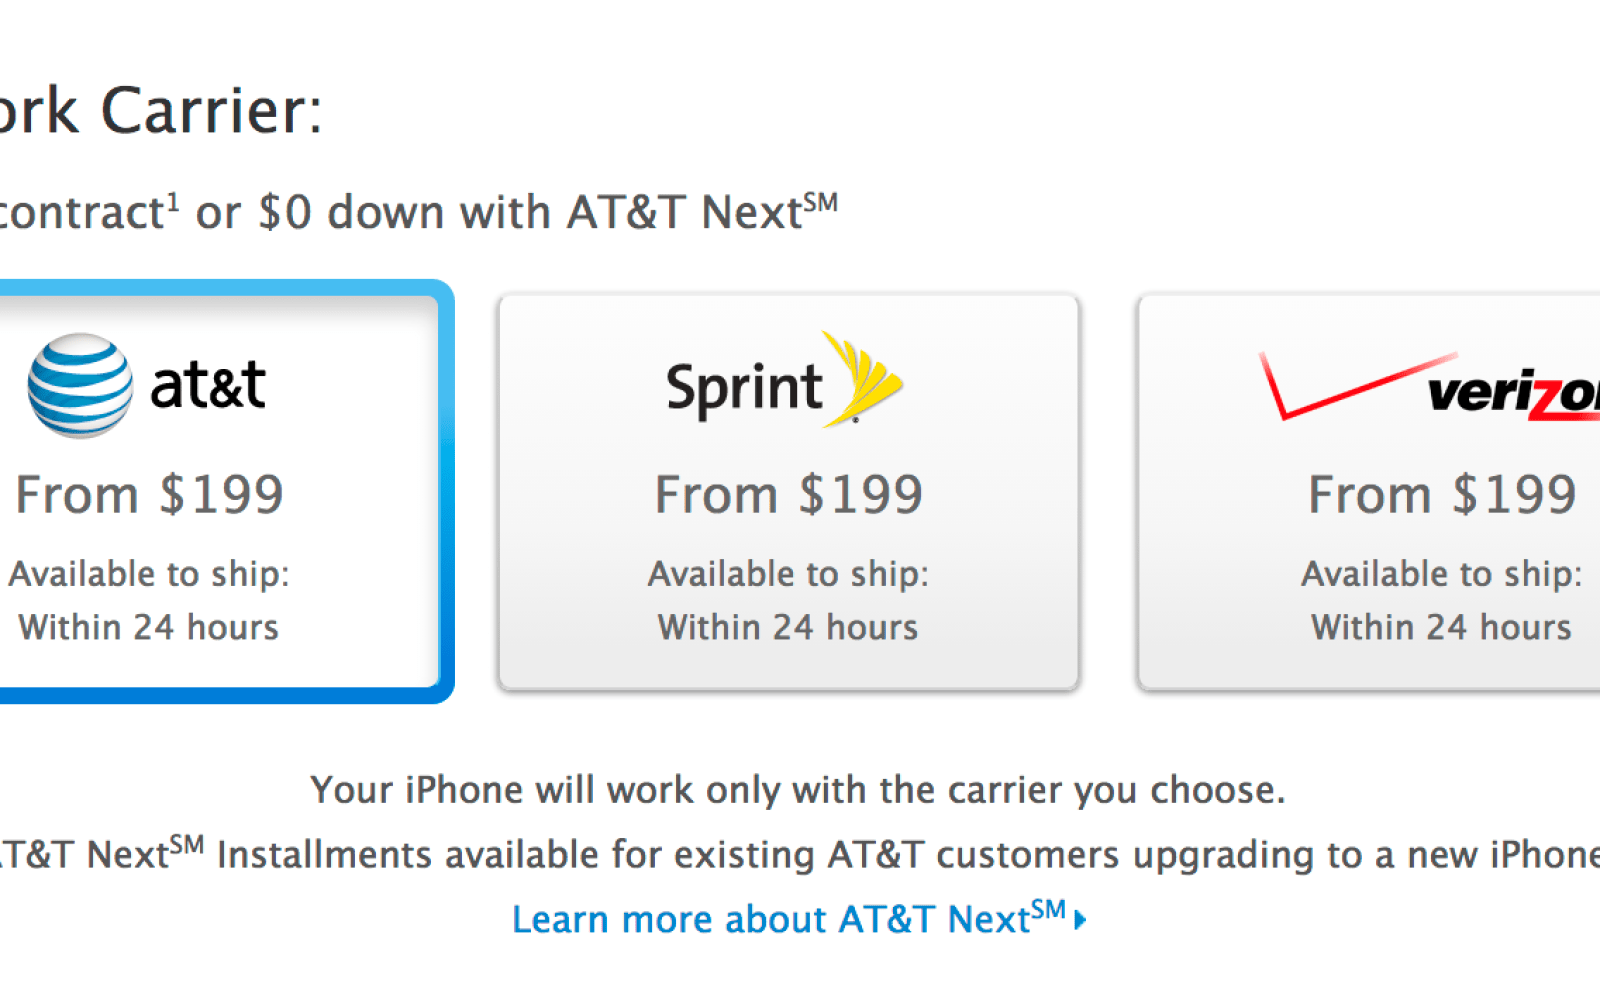 at&t customer service phone number 24 7